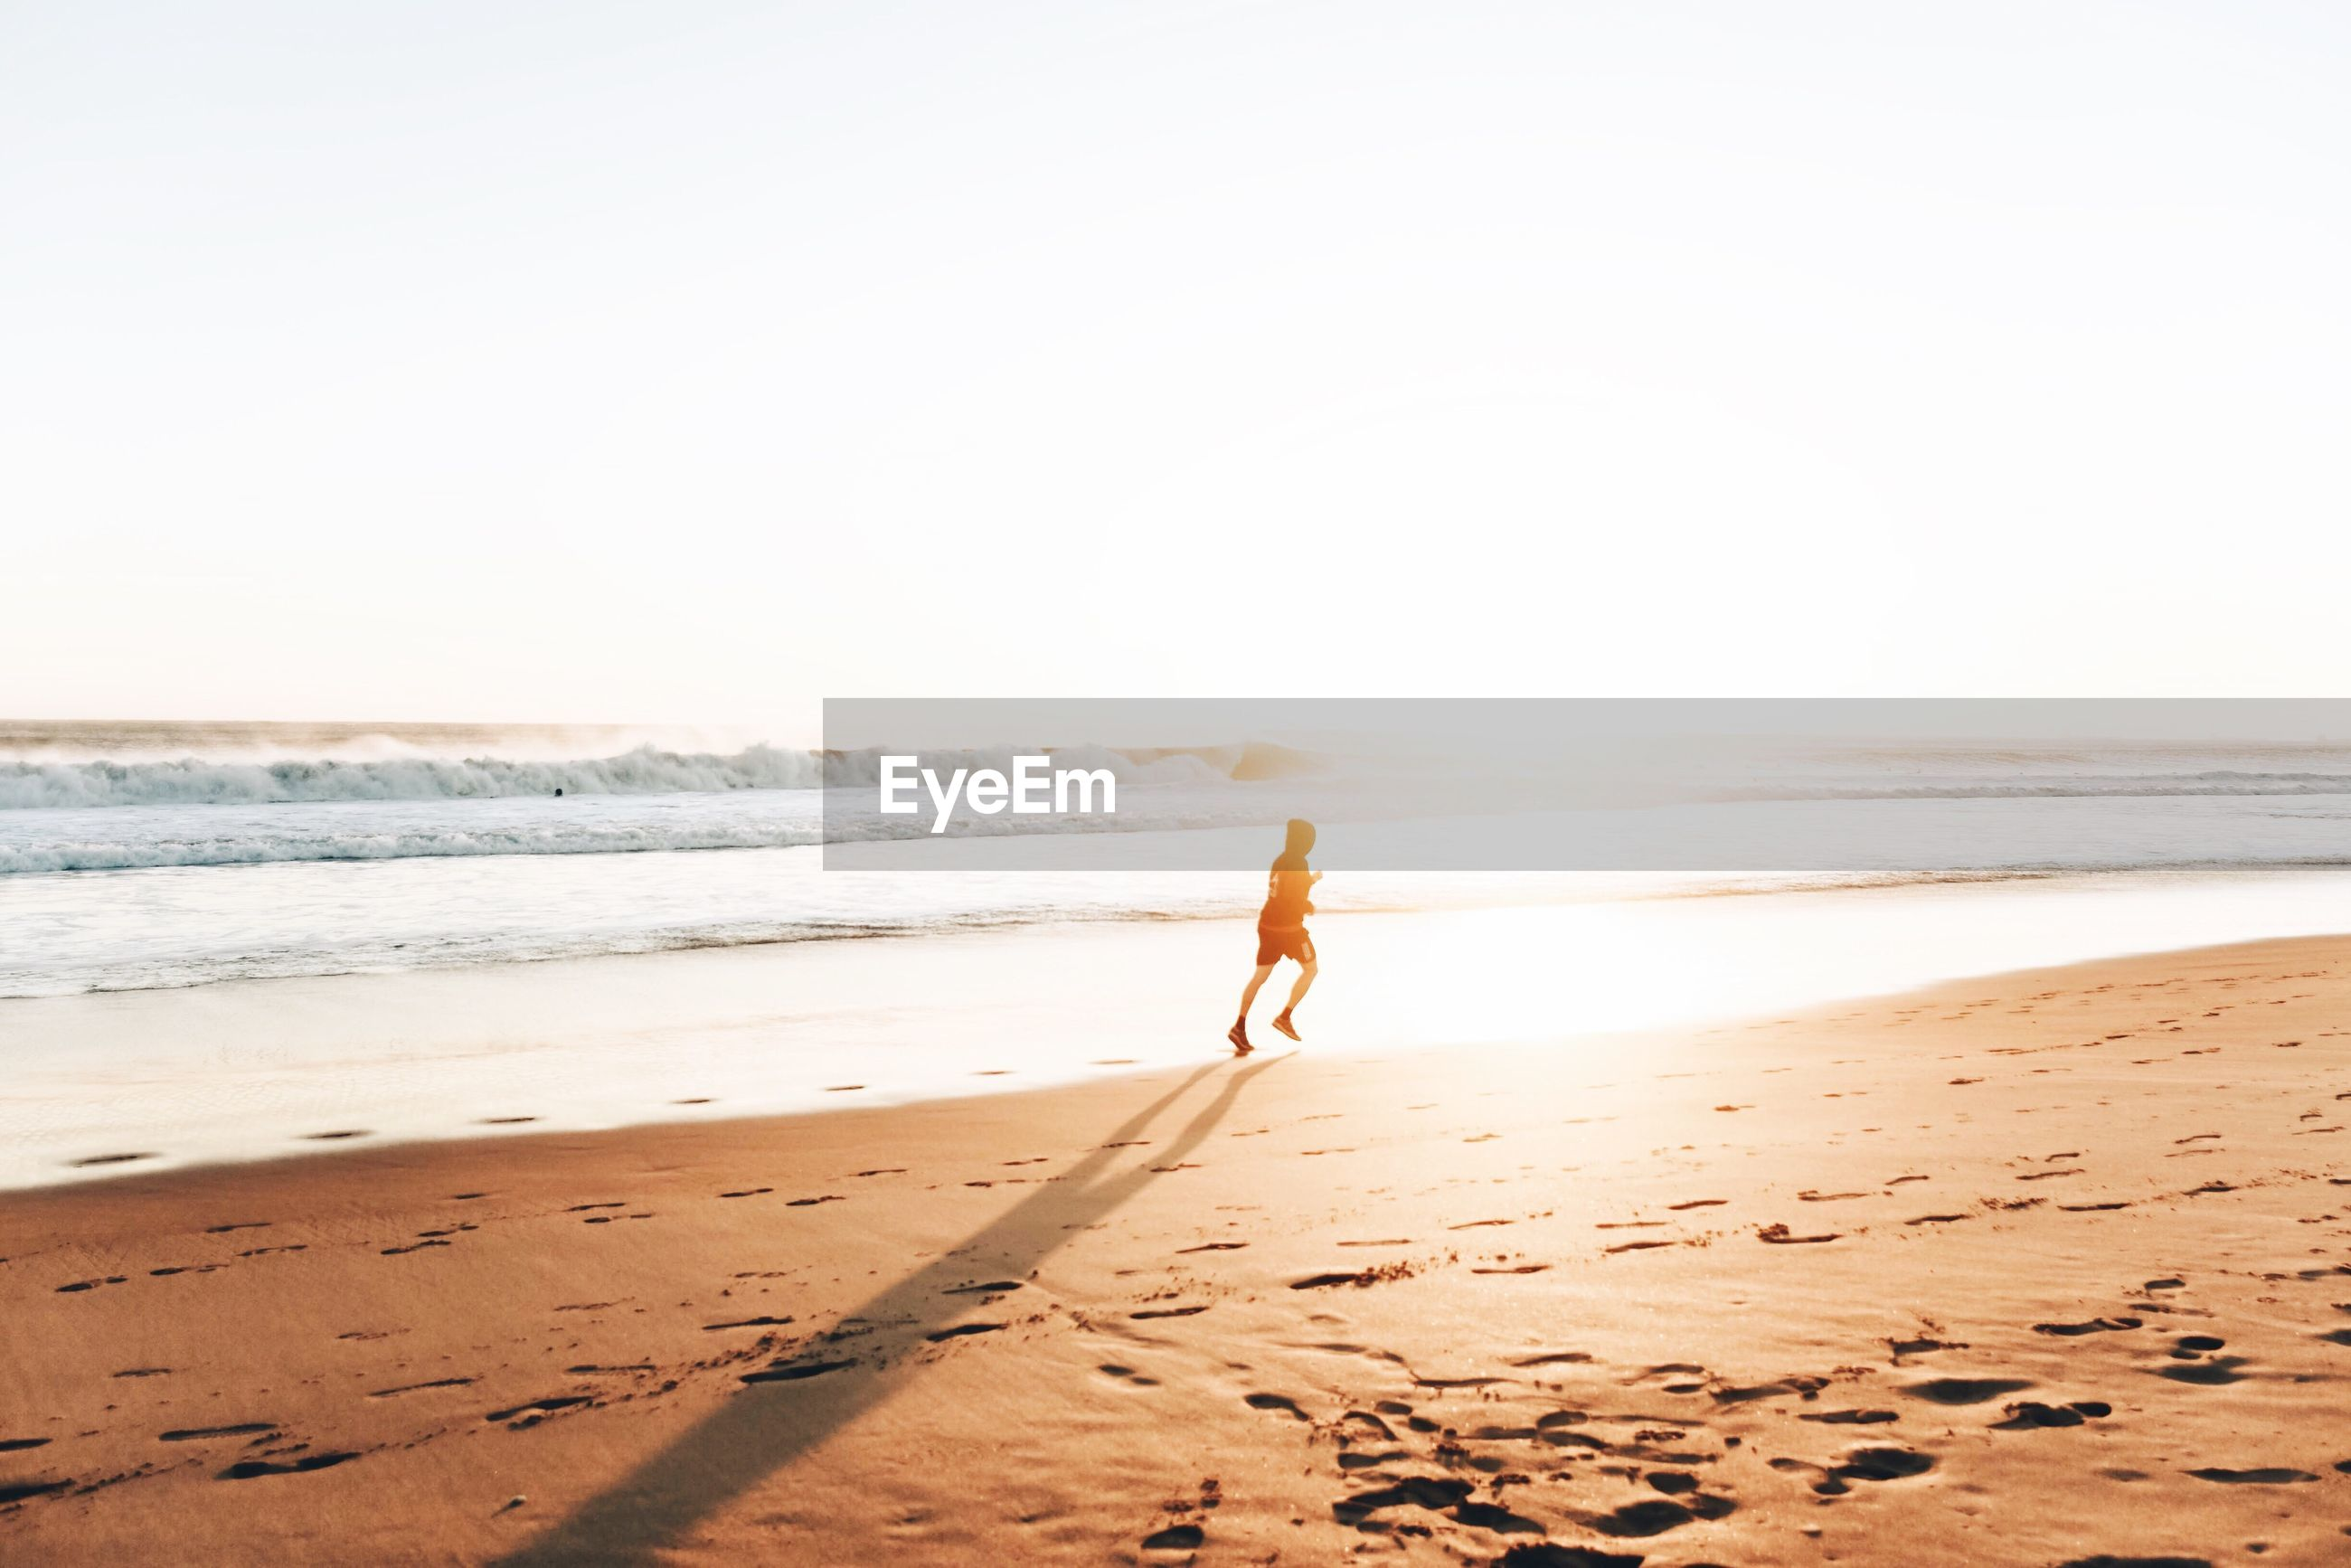 Man running on shore at beach against clear sky